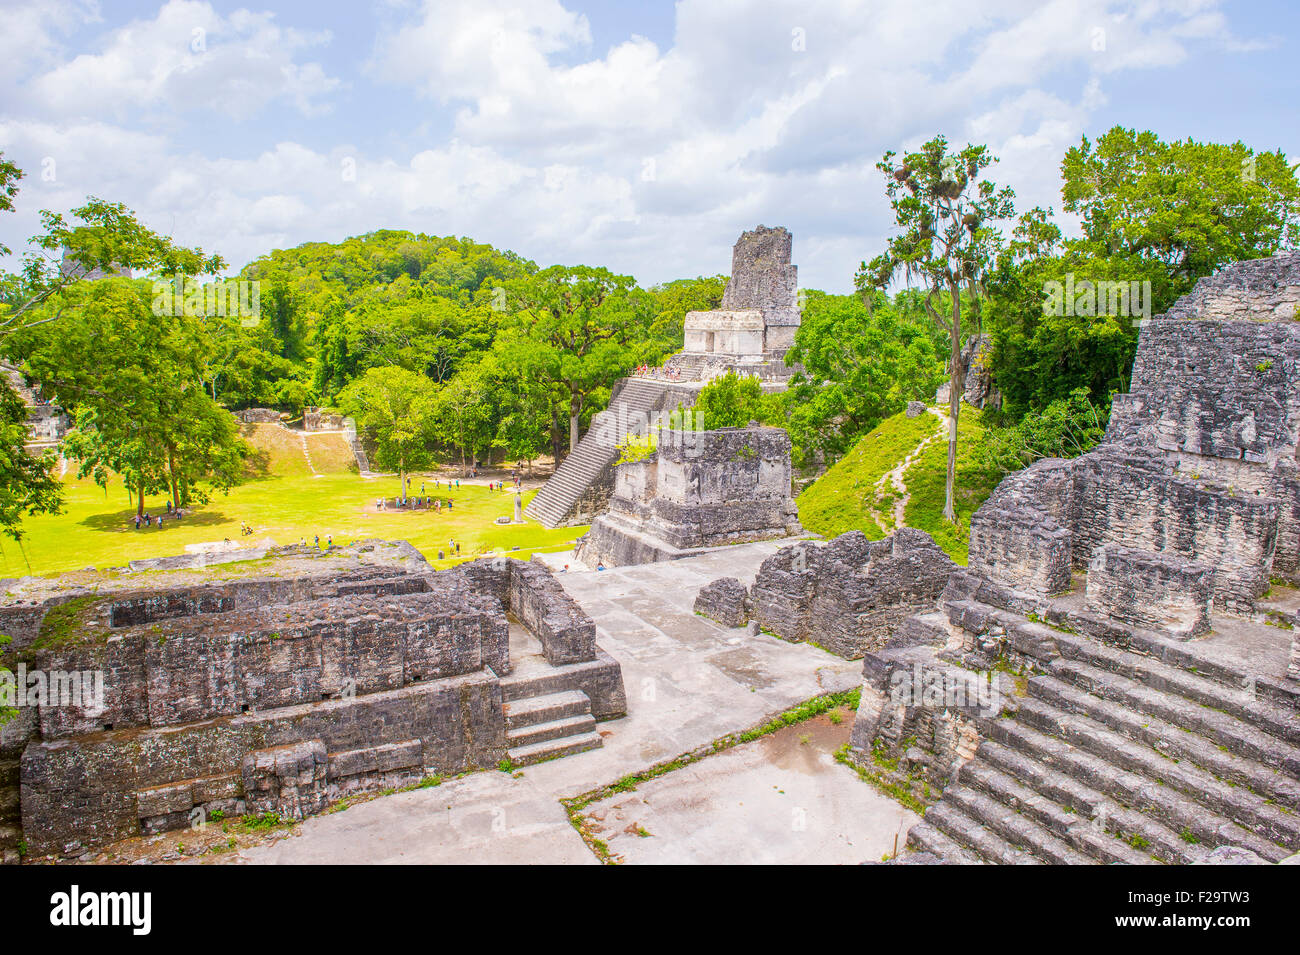 The archaeological site of the pre-Columbian Maya civilization in Tikal National Park , Guatemala - Stock Image